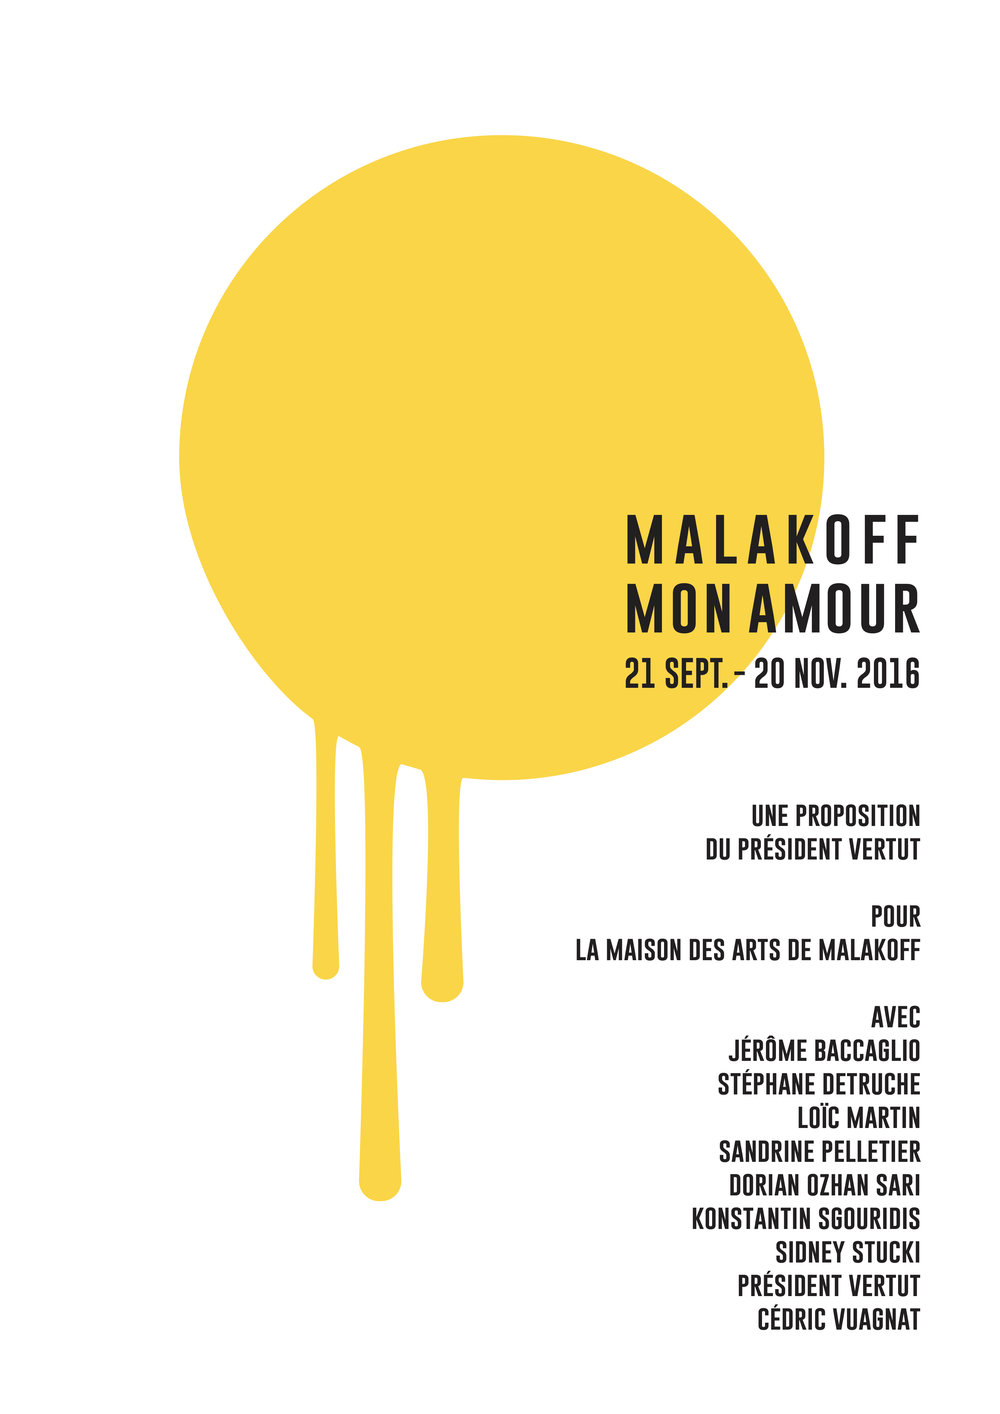 VISITE MDA'S MALAKOFF MON AMOUR PAGE